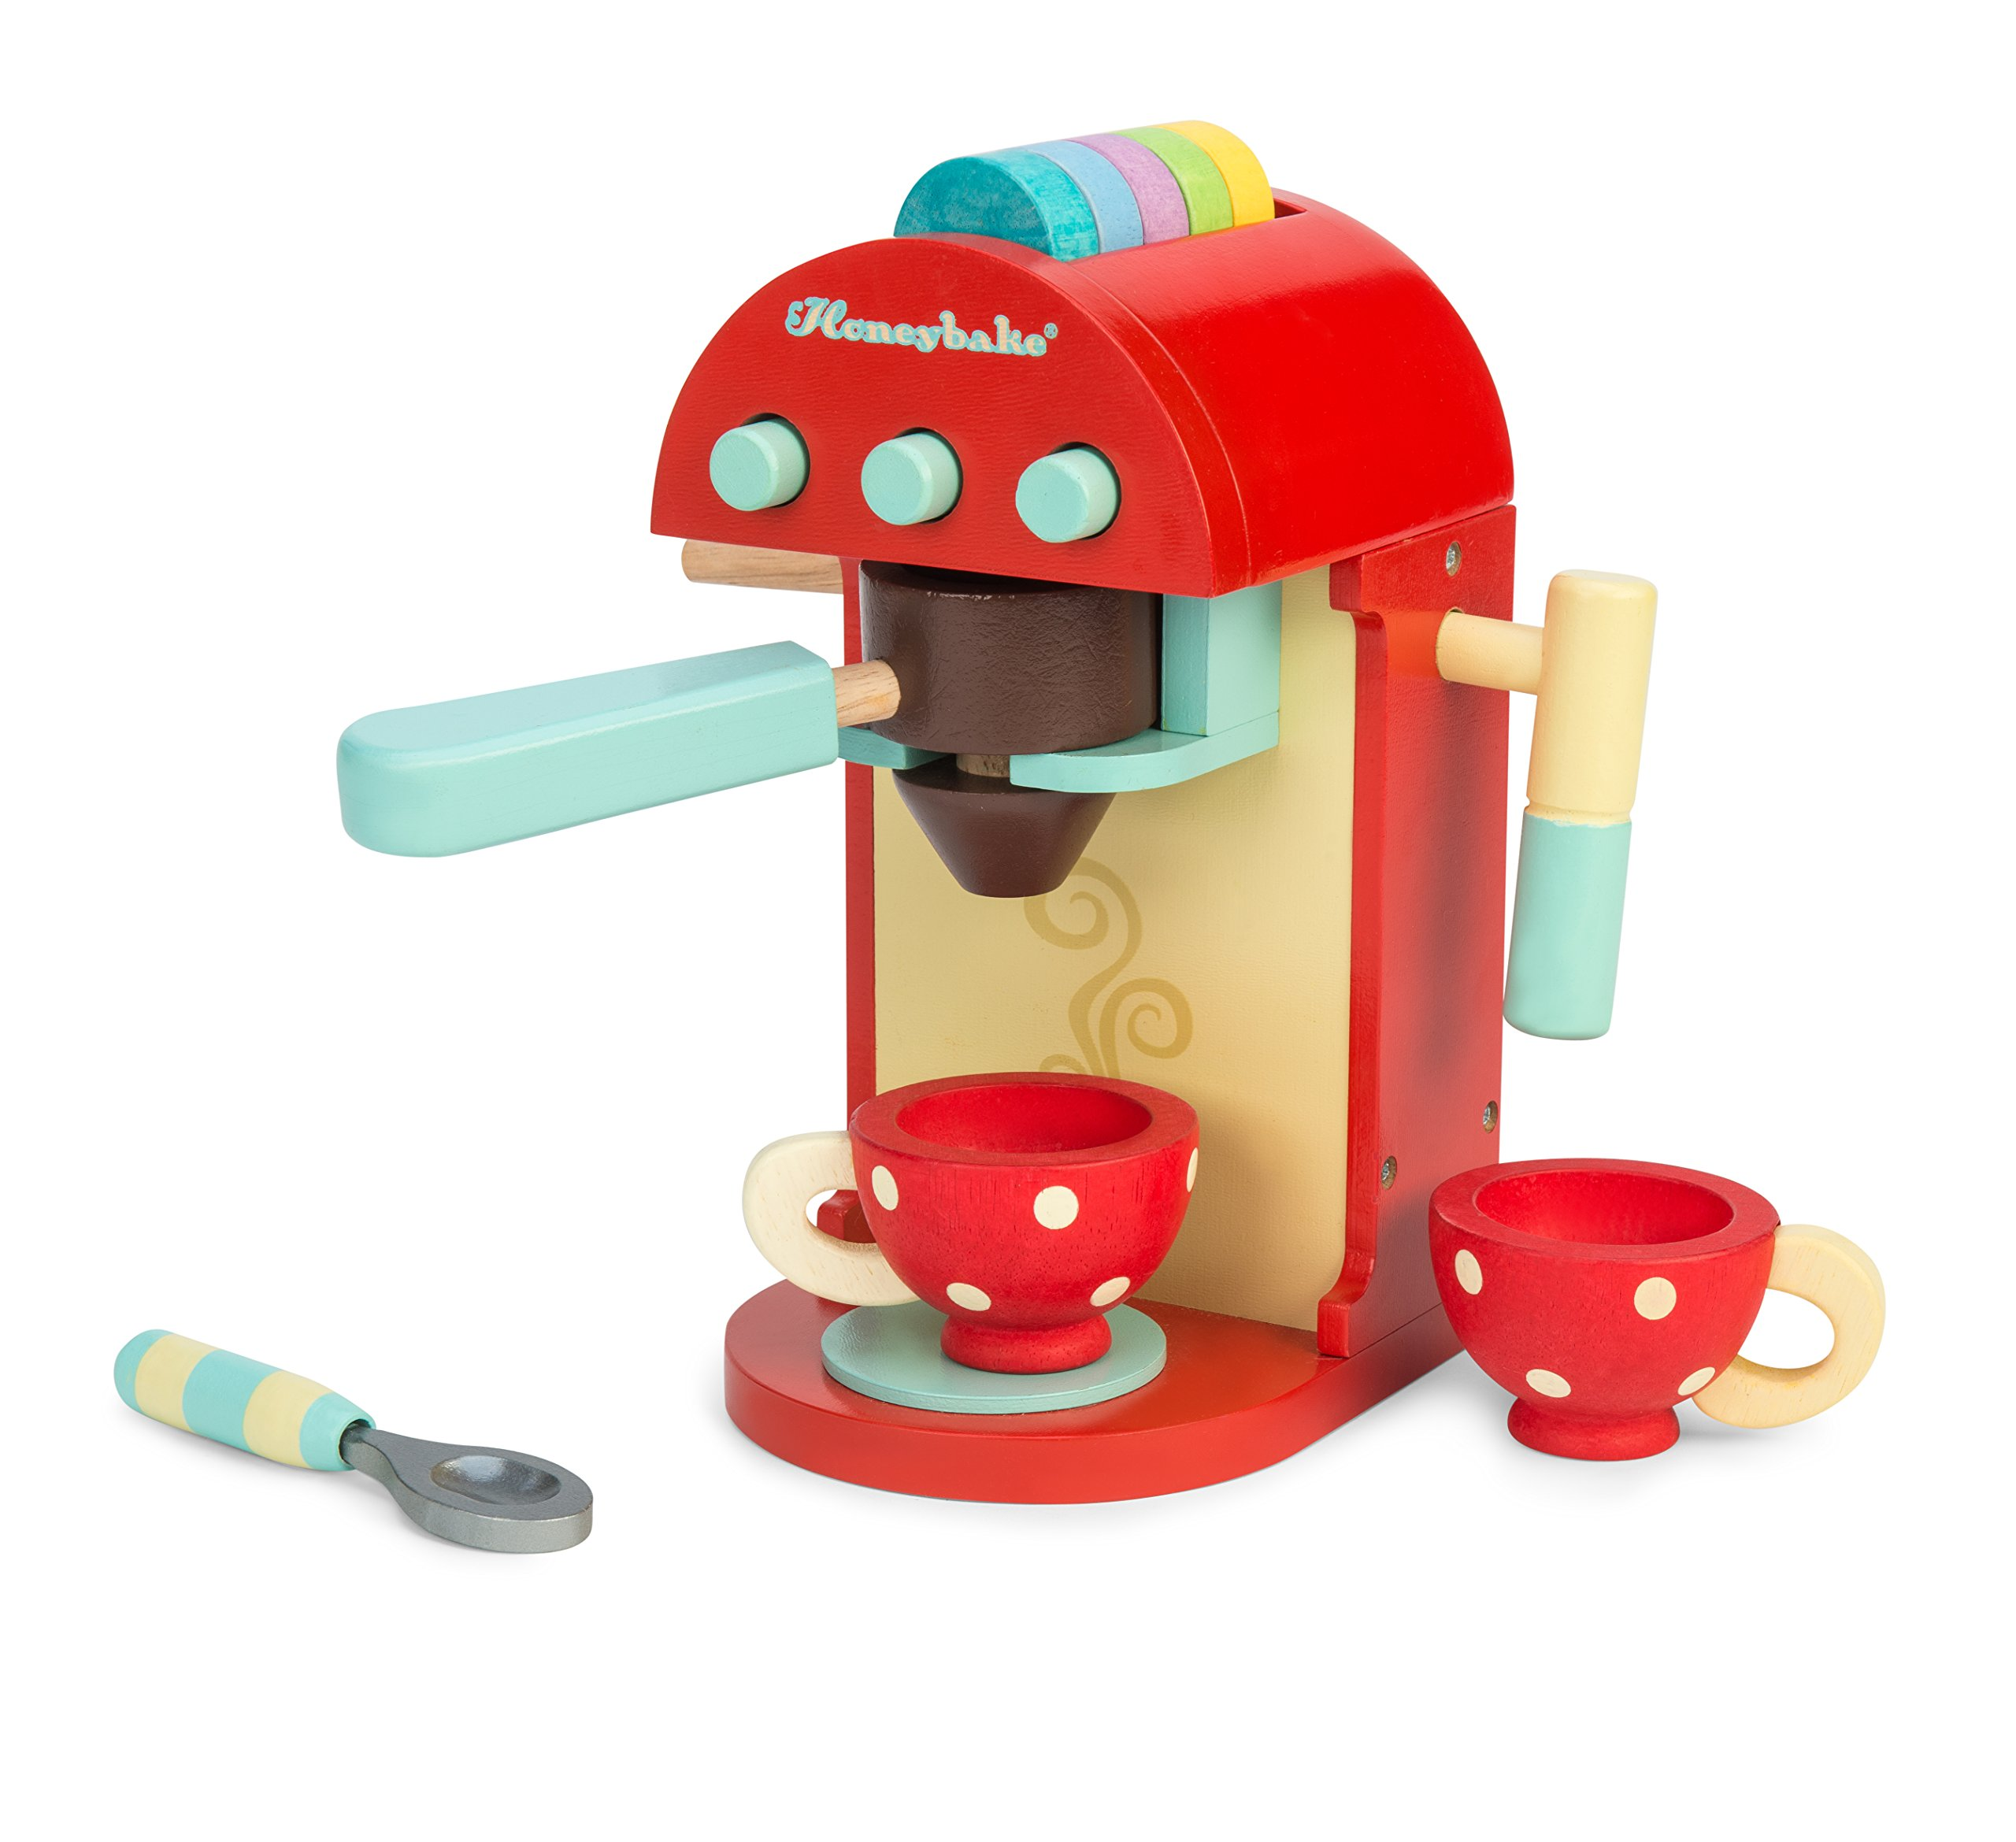 Le Toy Van TV299 Honeybake Collection-Cafe Machine Playset